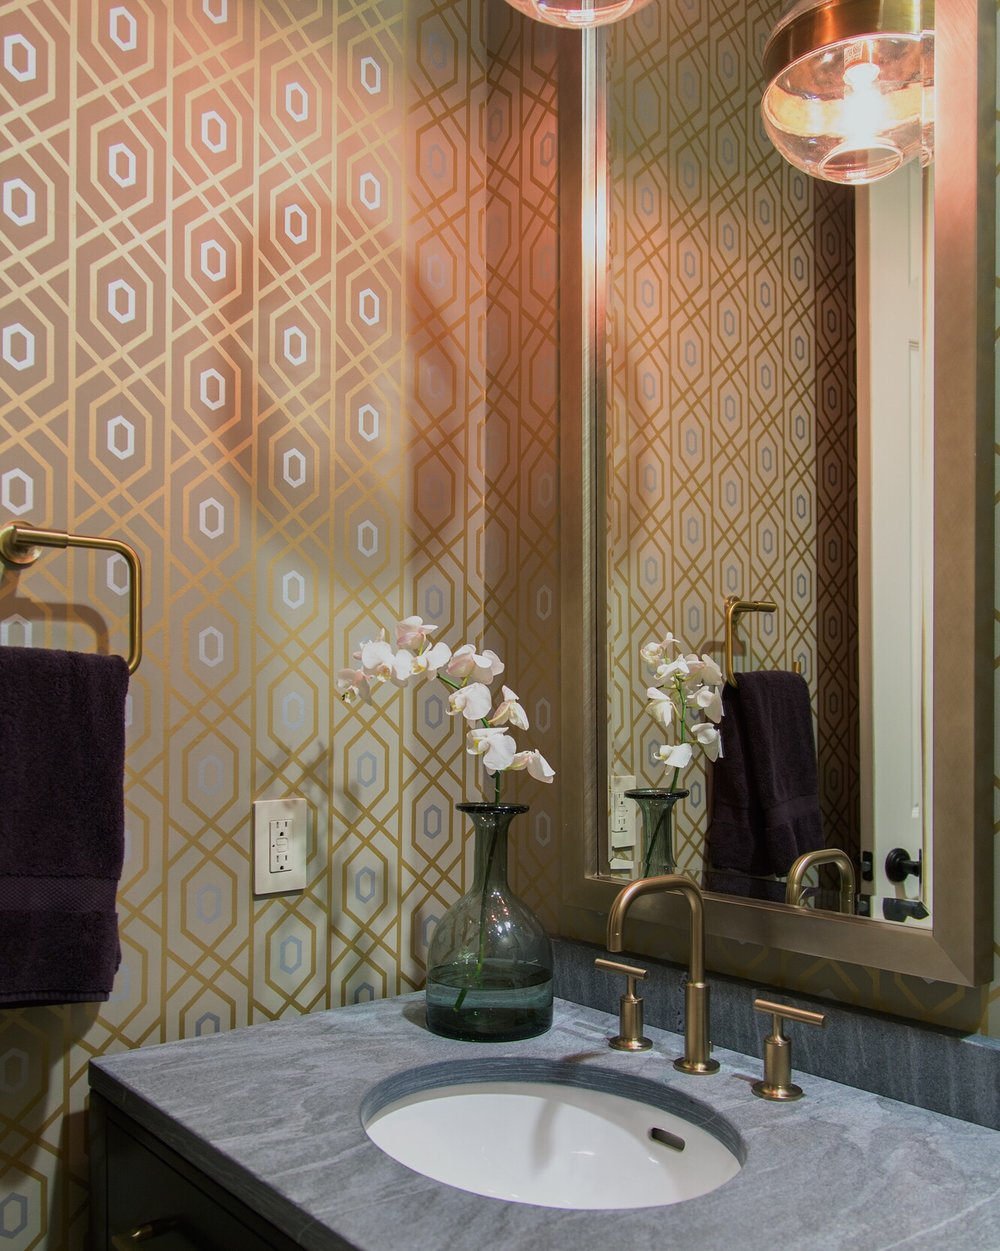 "This one is maybe about 3"" or just under. Same idea. Pretty unnoticeable, because this bathroom is all about the wallpaper and the gold and gray color scheme. 